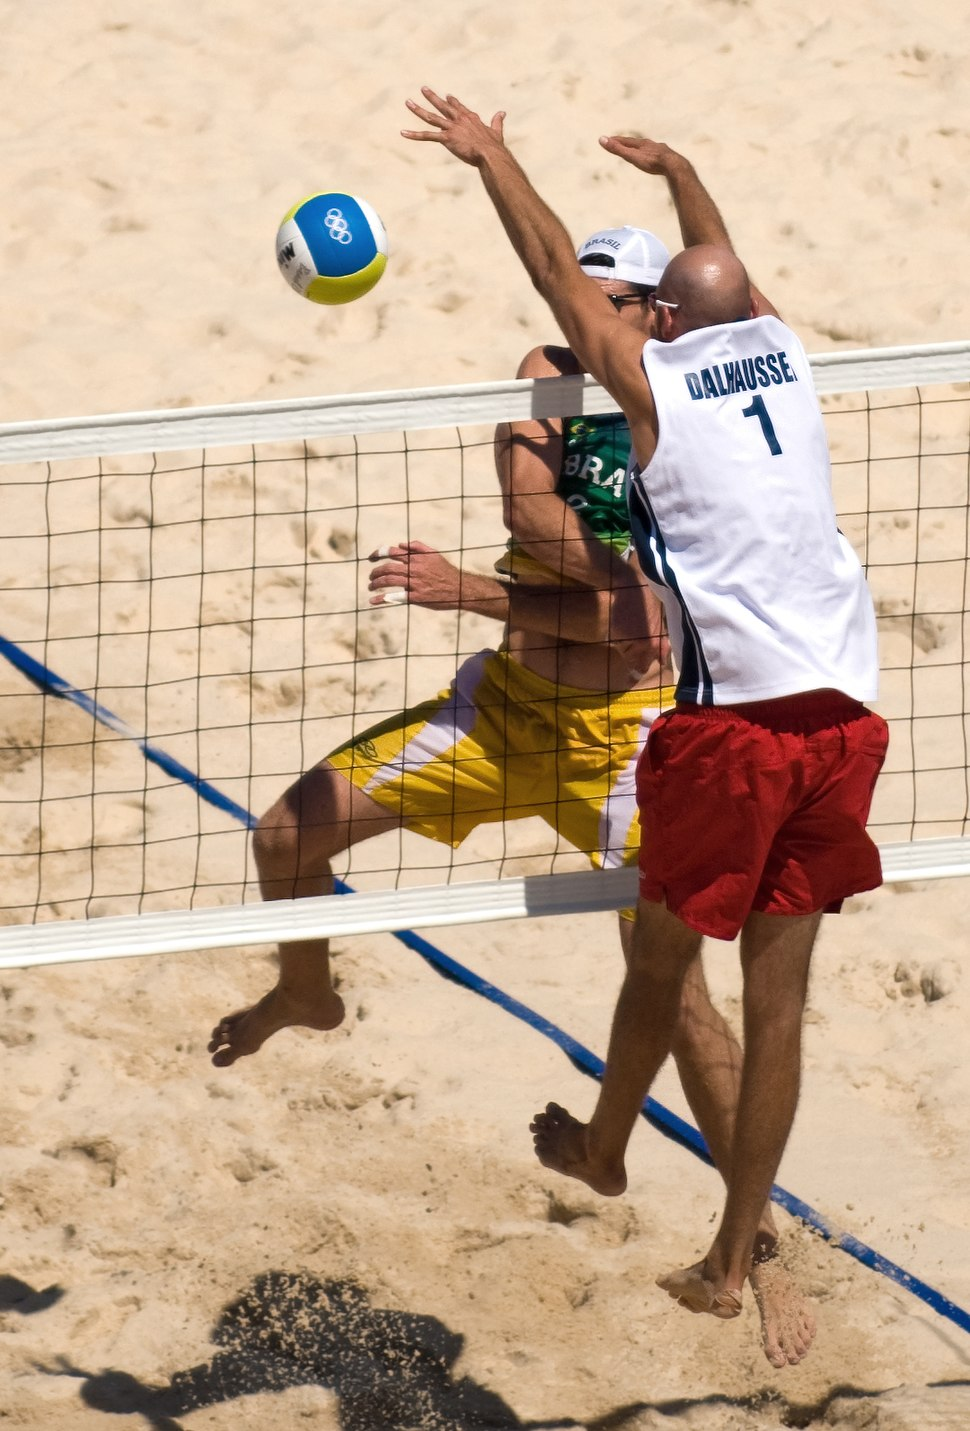 Beach volley at the Beijing Olympics - Final USA v. Brazil